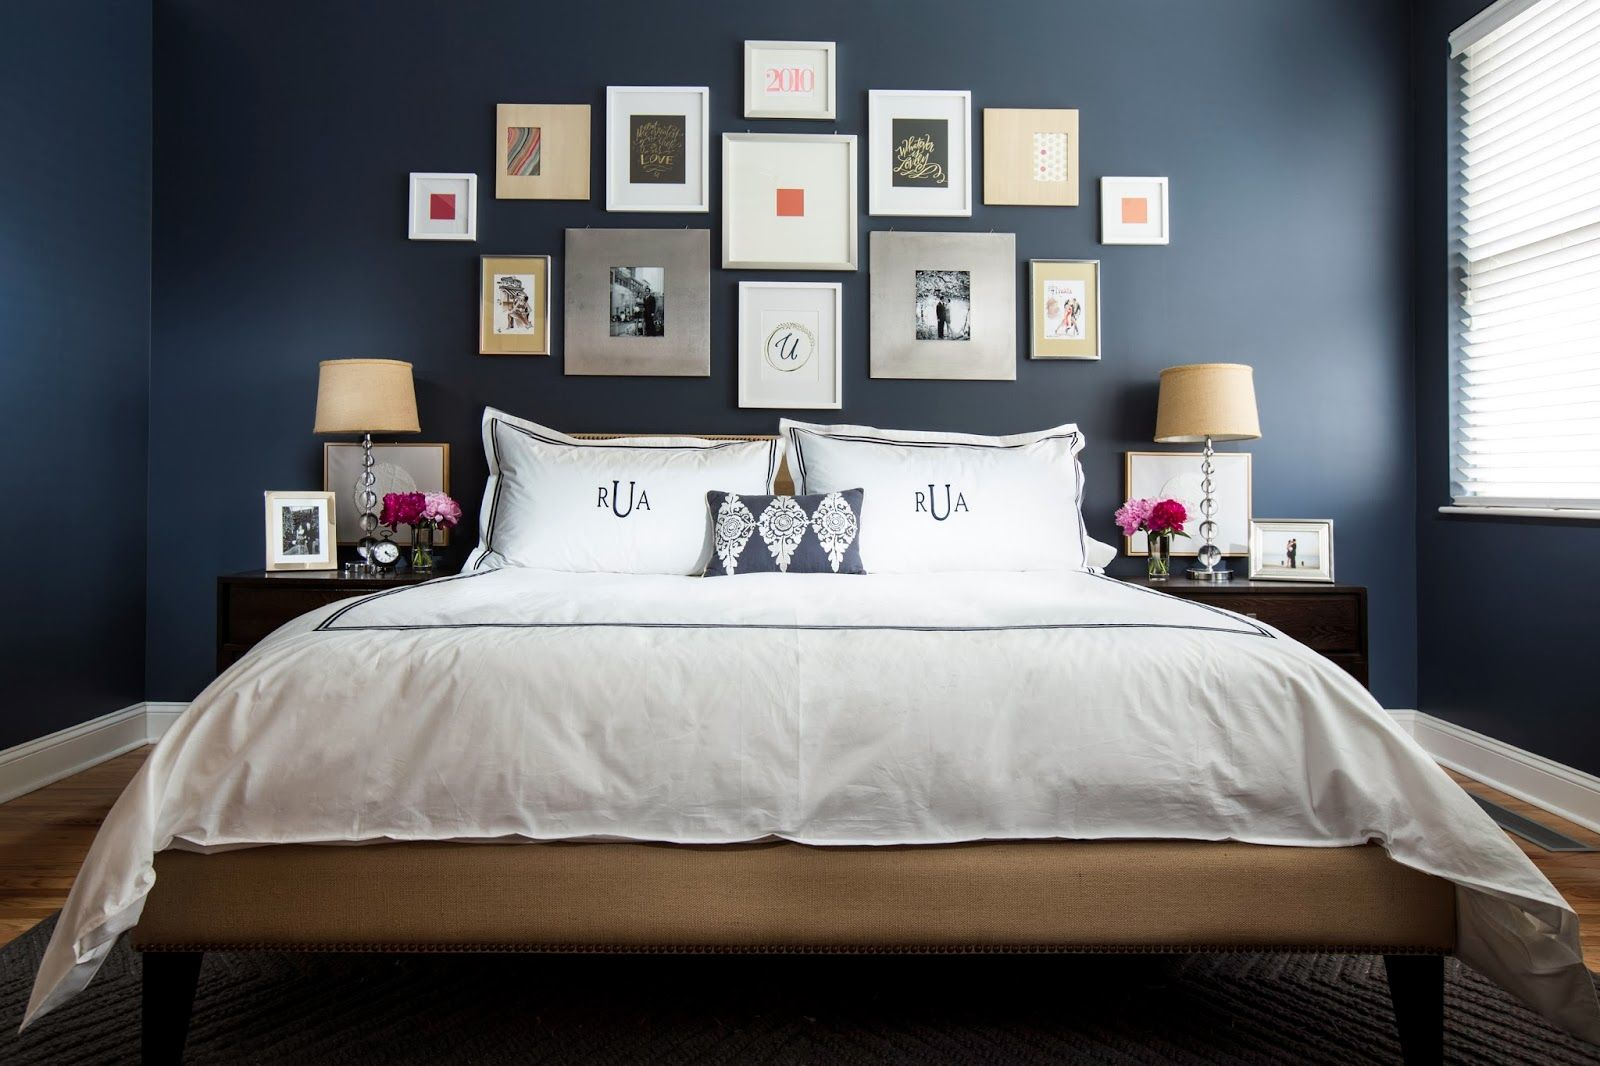 Bedroom wall decorating ideas blue - Navy Blue Bedrooms